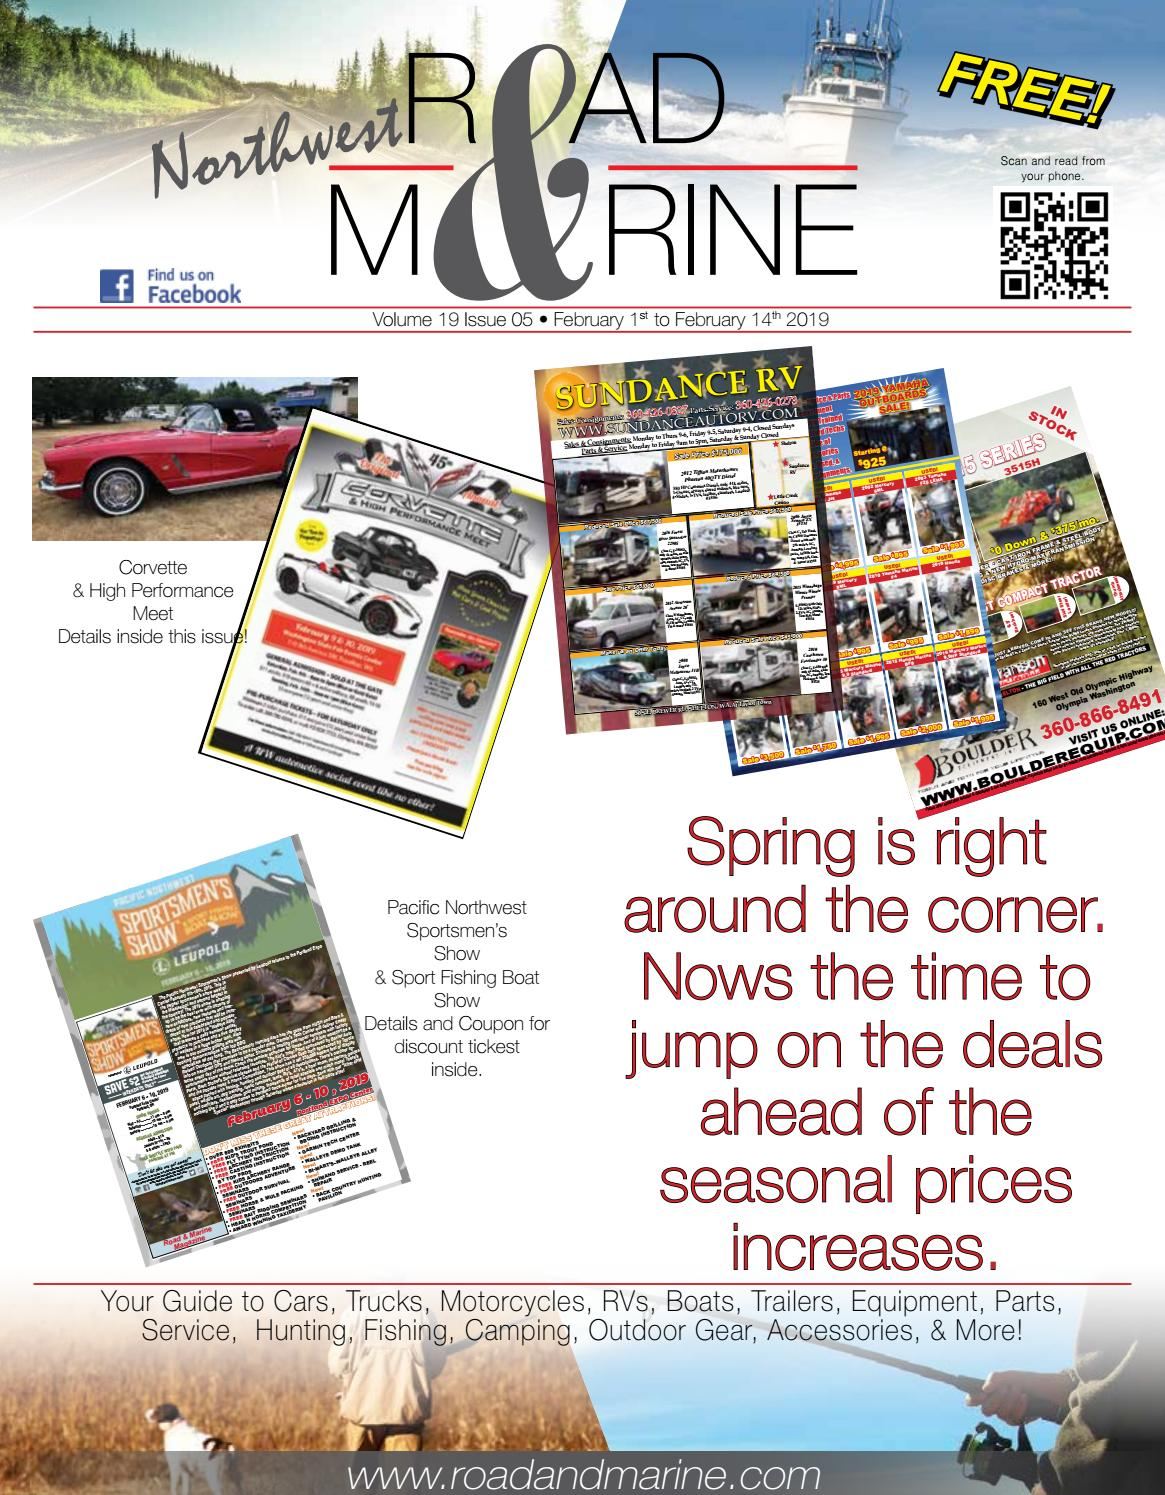 Road and Marine Magazine Vol 19 #05 by Road & Marine Magazine - issuu